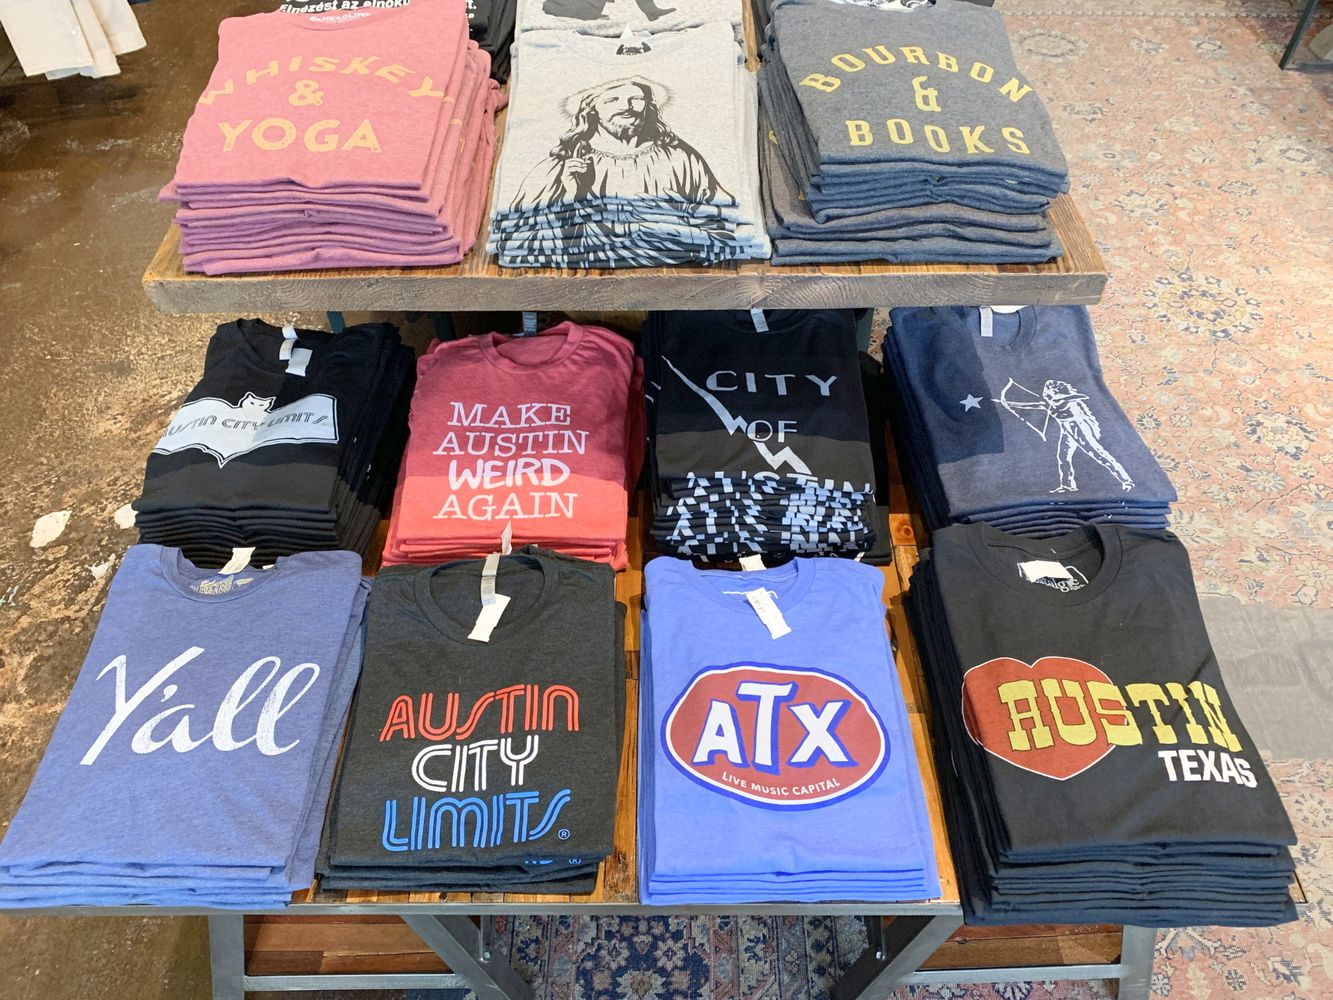 Austin T-Shirts for Sale in South Congress – Where to Shop in Austin